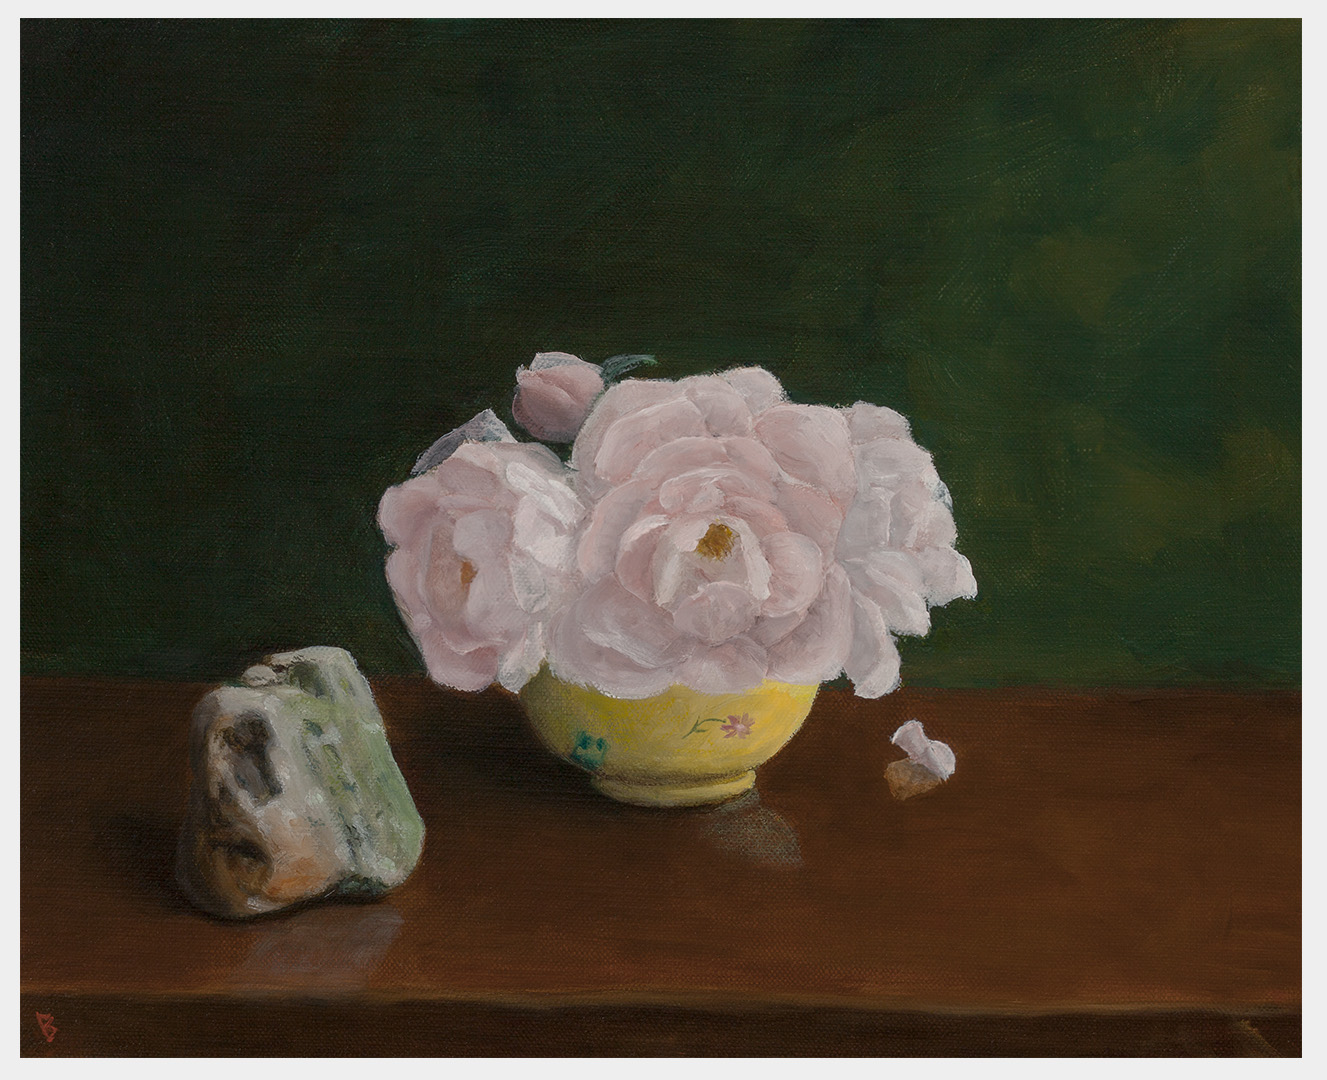 Realistic still life oil painting of pink roses in a yellow bowl next to a small multicolored rock, all on a table.